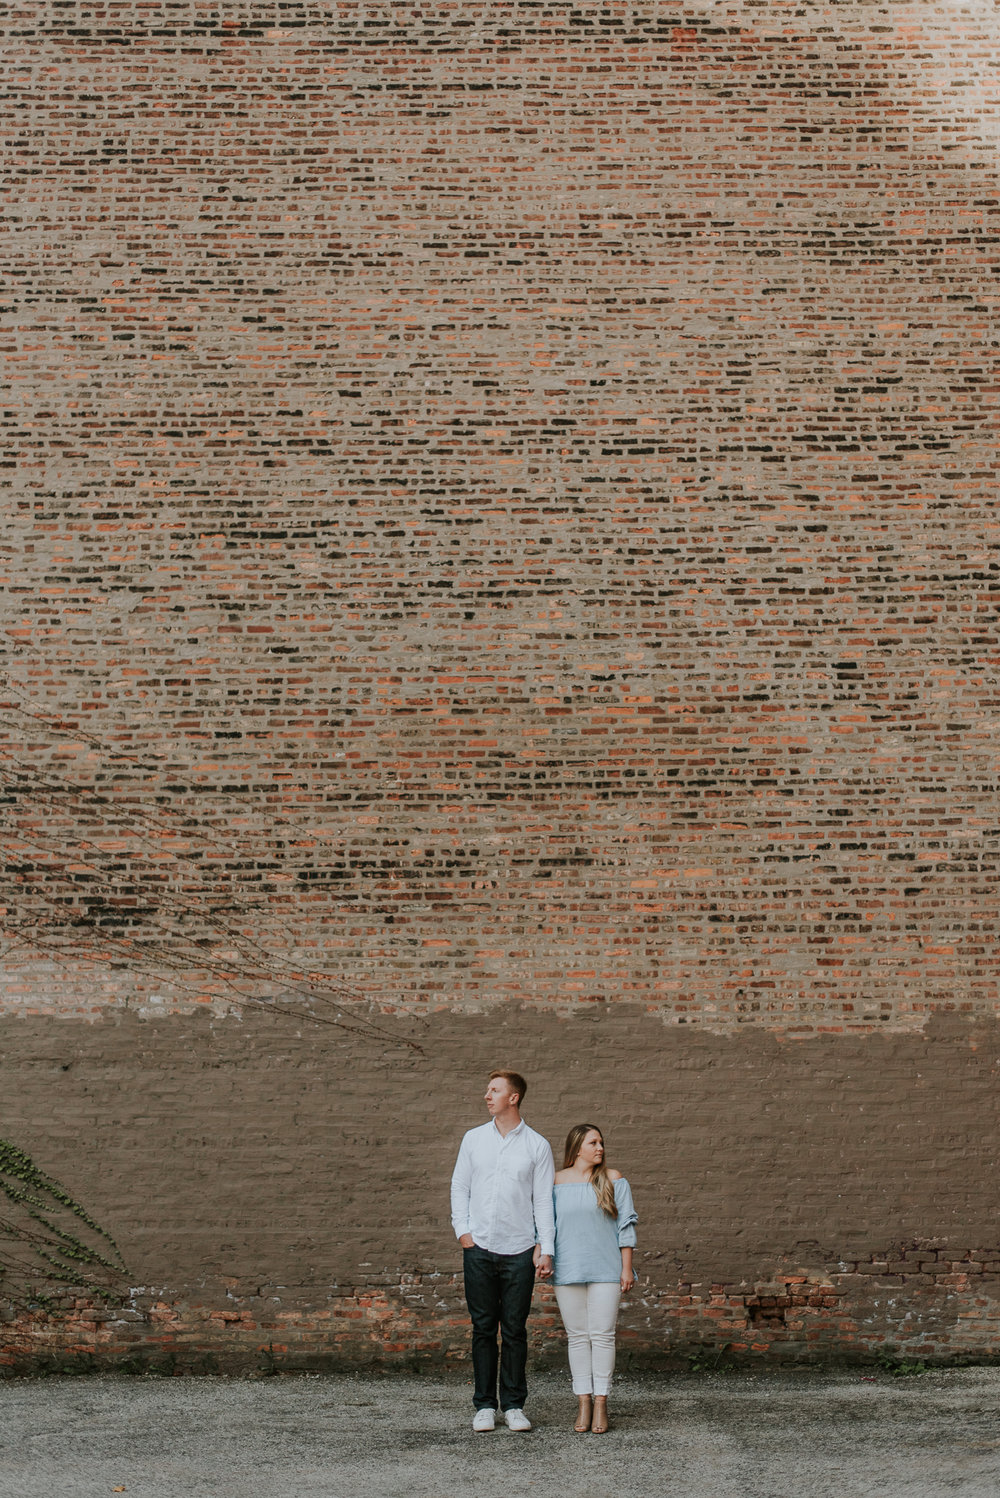 WEST LOOP ENGAGEMENT SESSION | CHICAGO ILLINOIS | KENOSHA WISCONSIN | WEDDINGS | LISH MARIE PHOTO-30.jpg